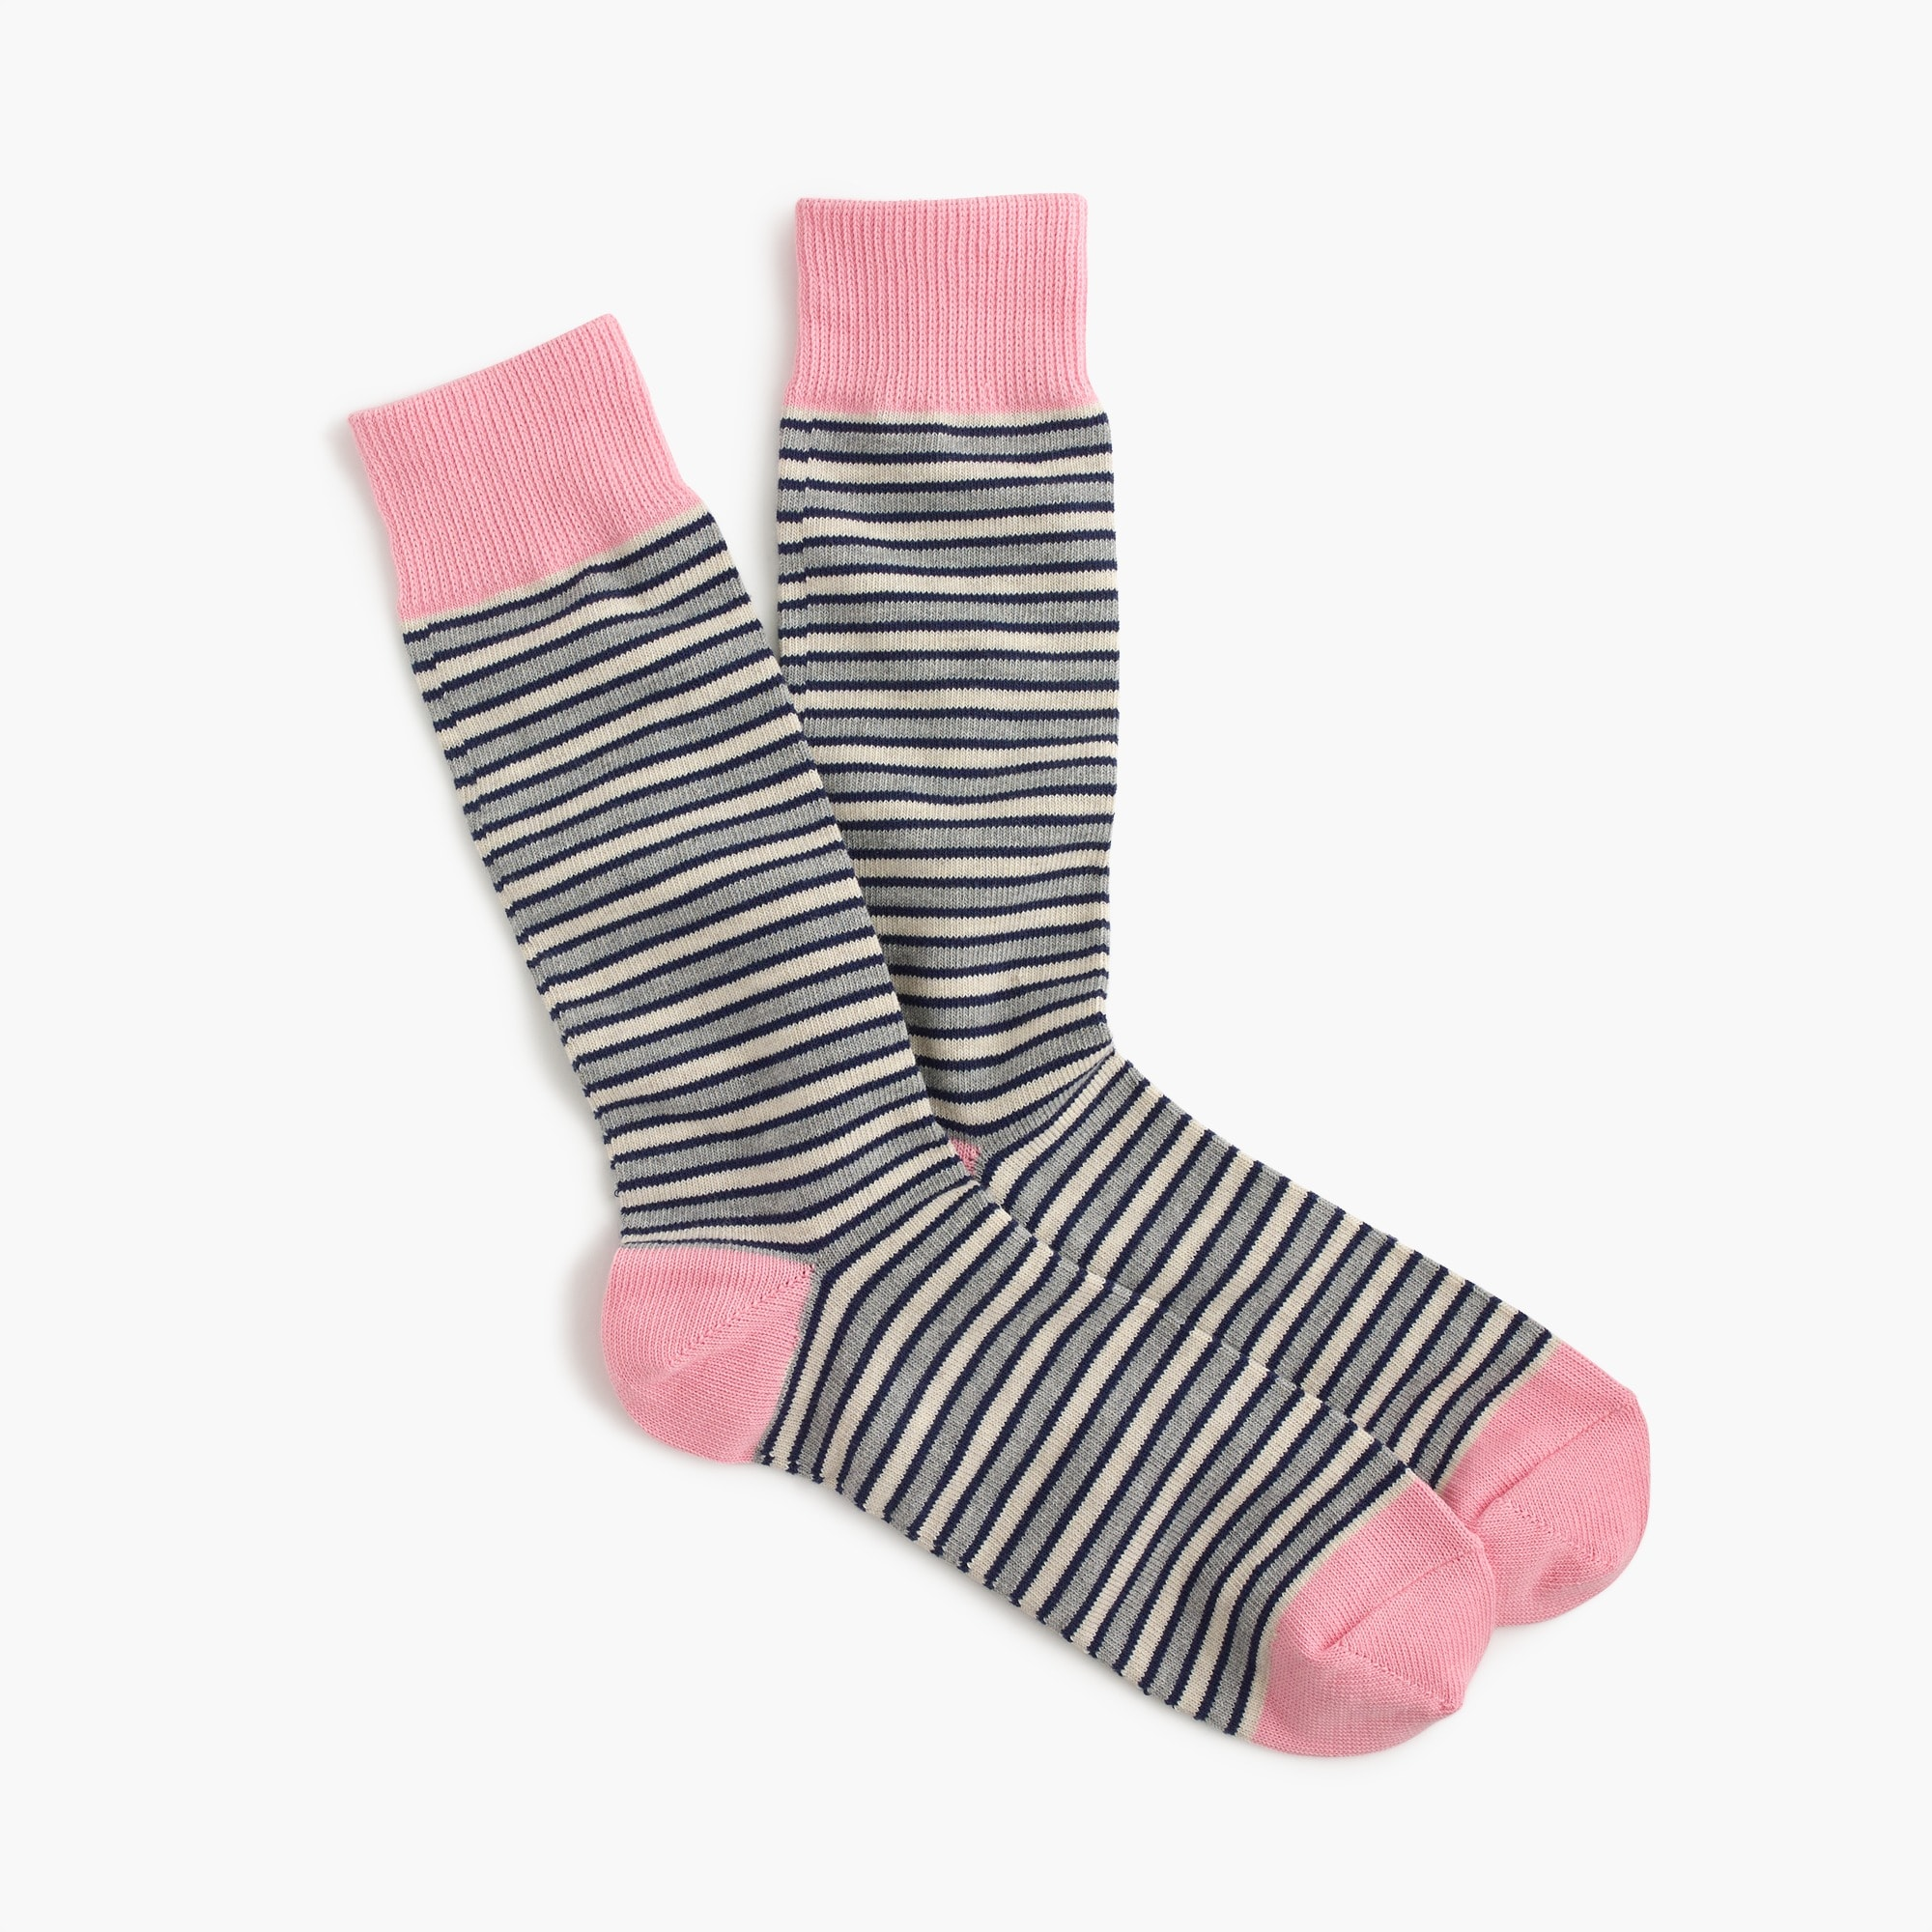 men's triple-stripe socks - men's accessories